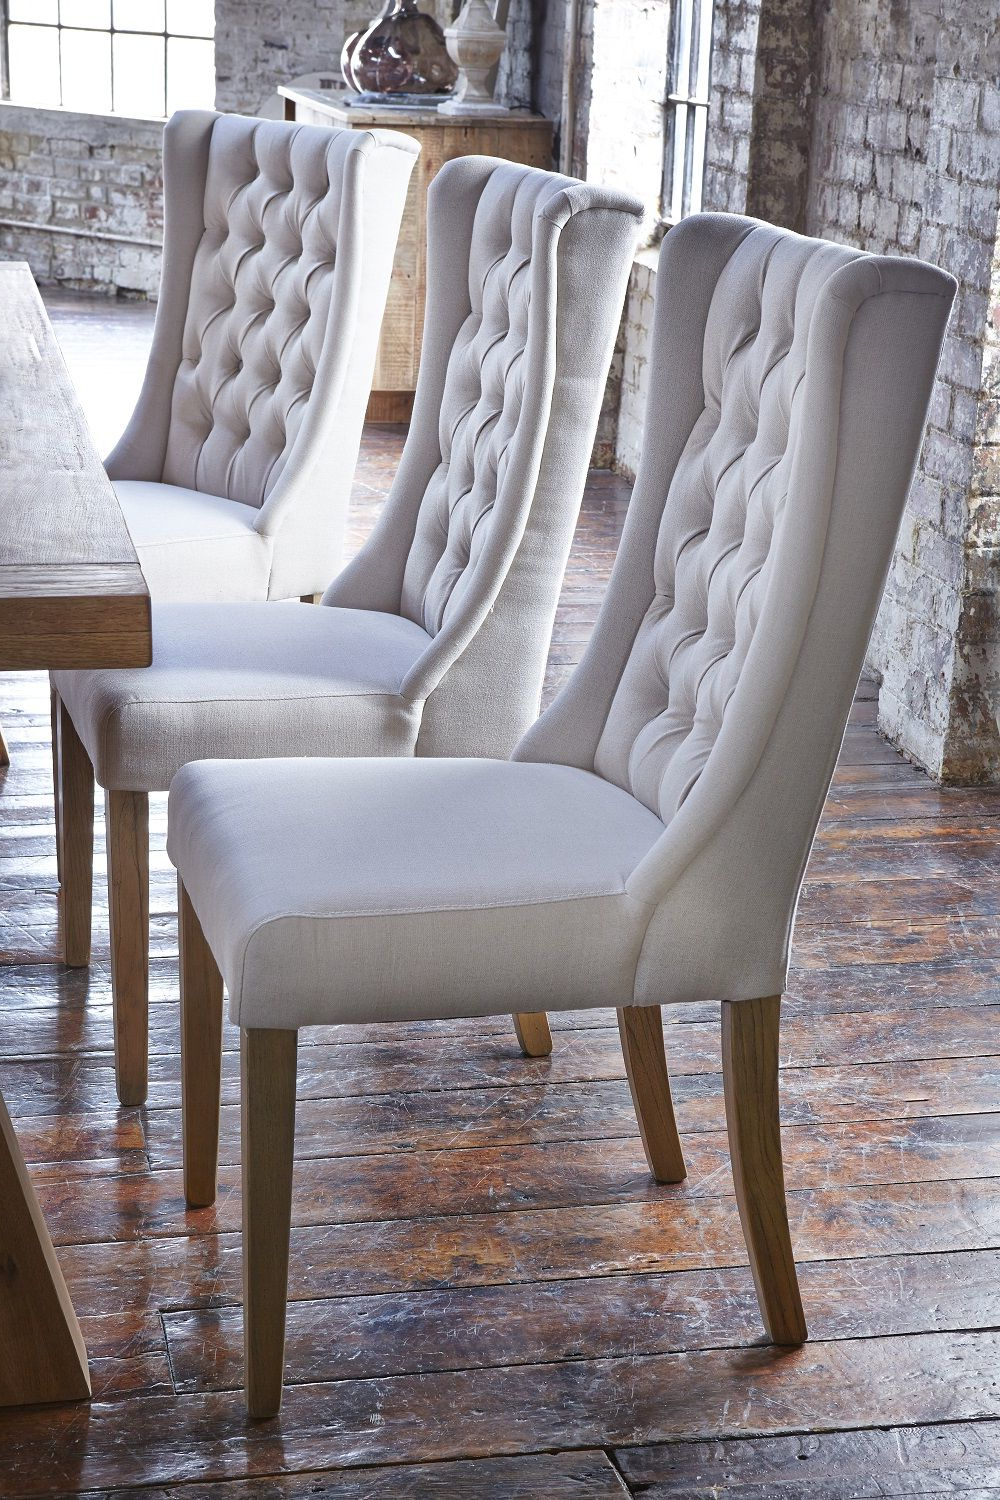 Kipling Fabric Dining Chair, Cream & Oak – Barker Inside Well Known Aime Upholstered Parsons Chairs In Beige (View 9 of 20)